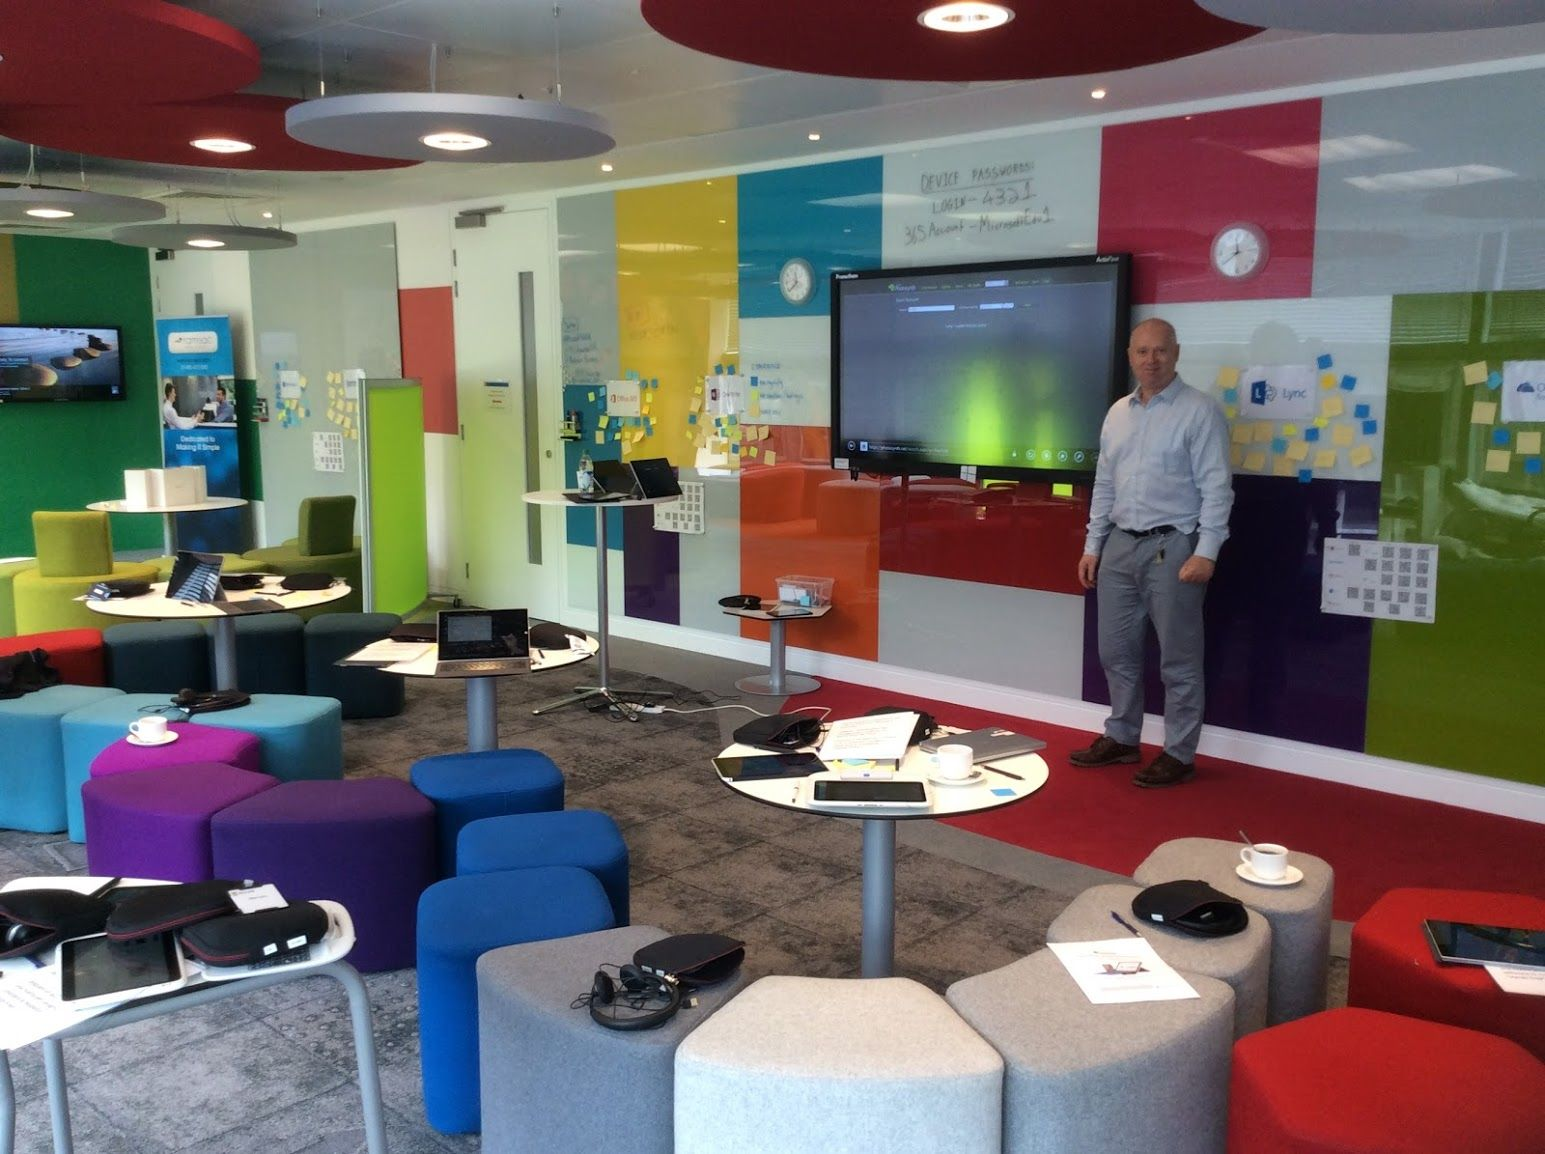 Brain Research Classroom Design : Microsoft showcase classroom london design